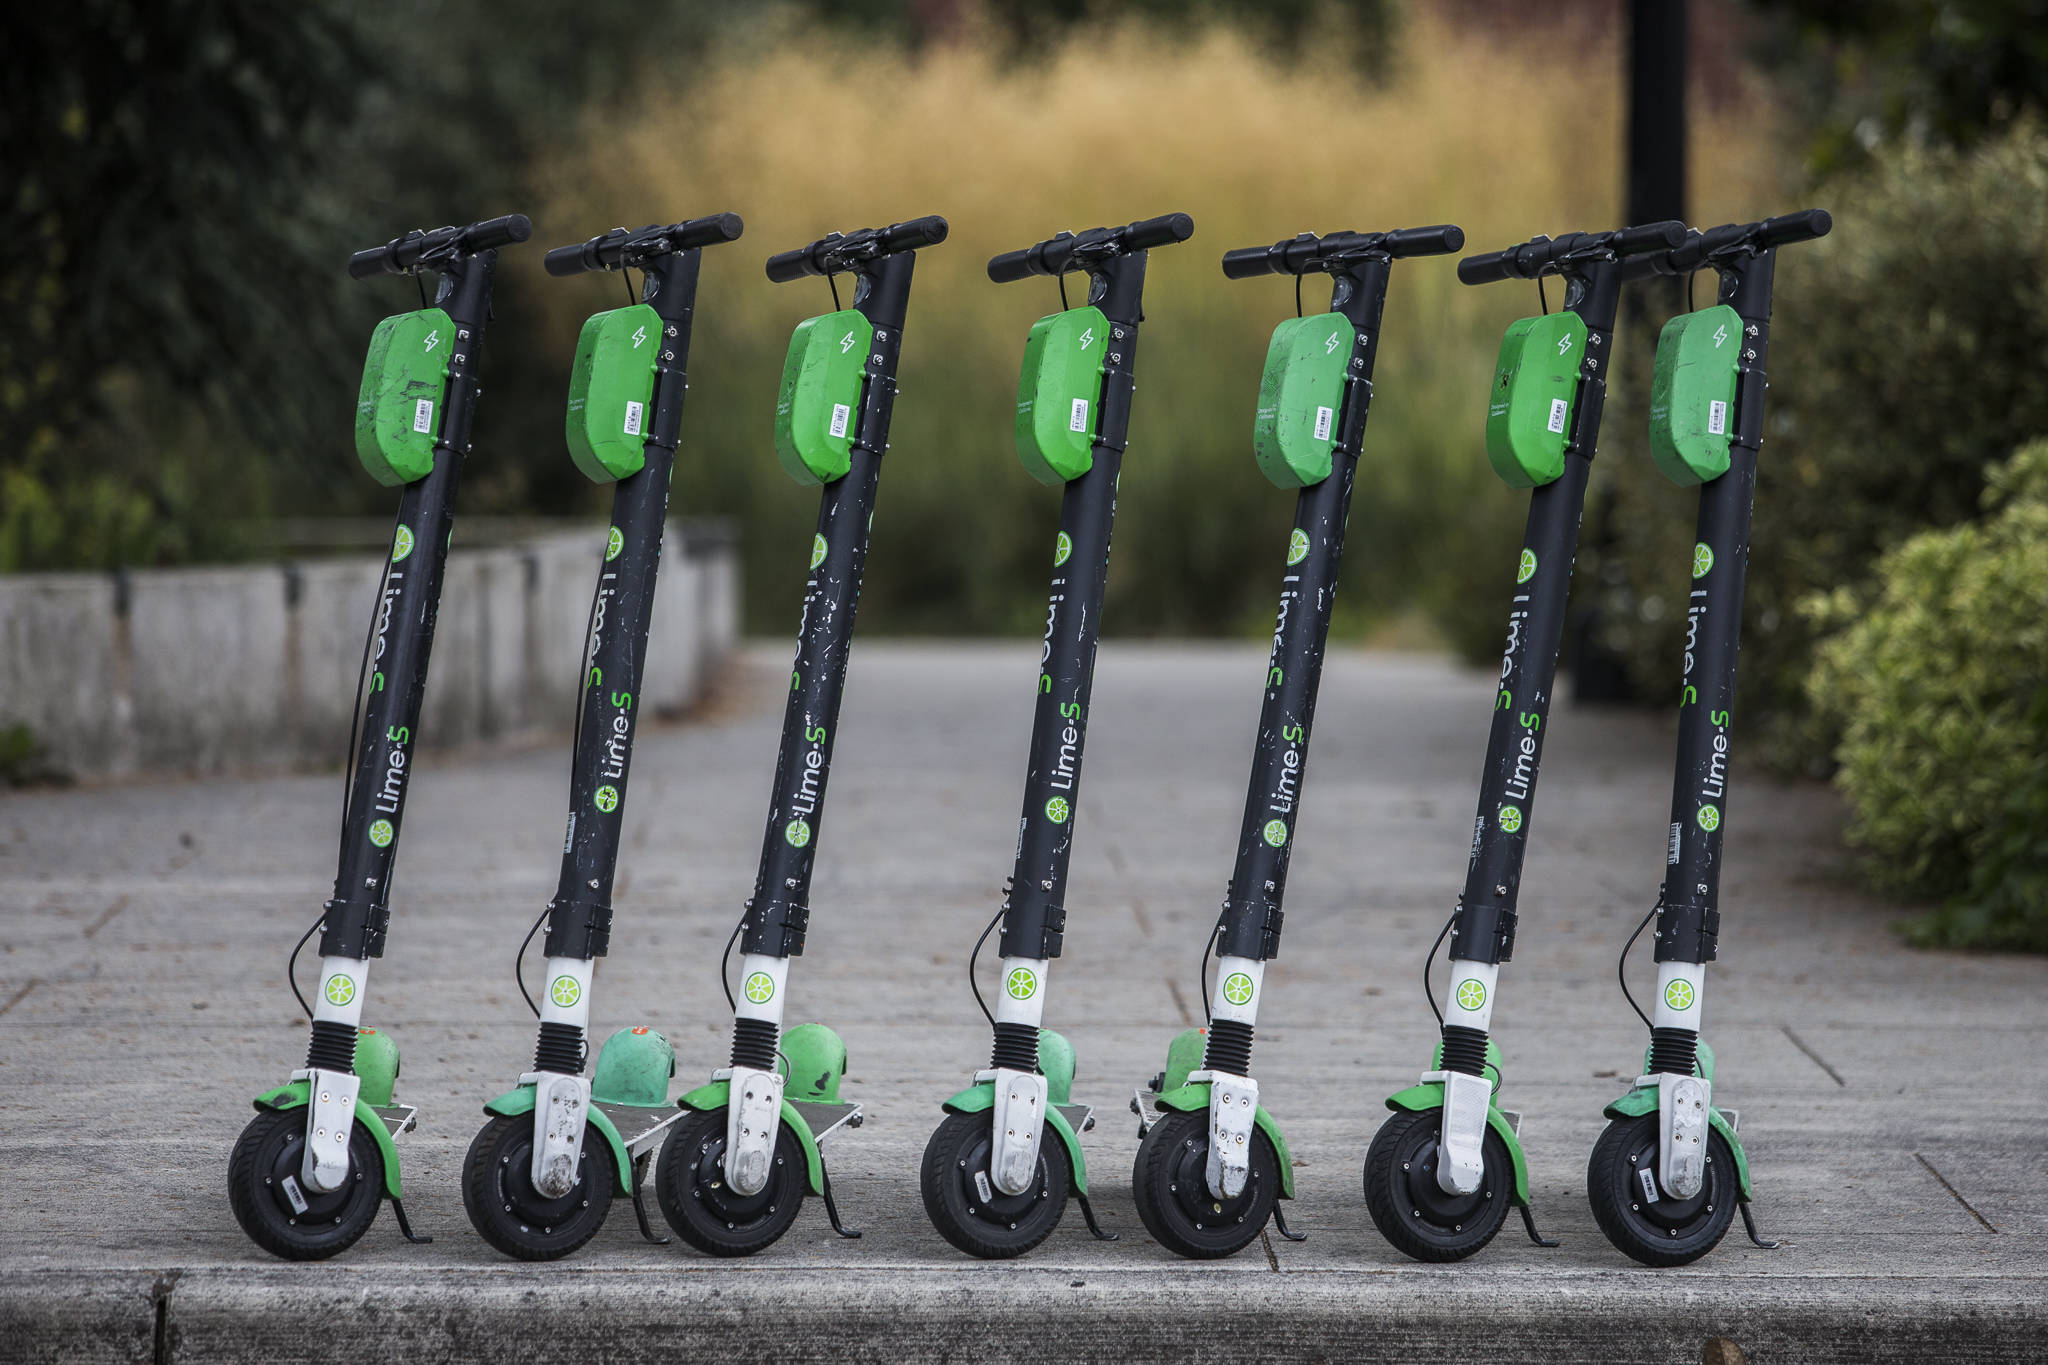 Fully charged Lime scooters along Bothell Way are ready to roll Wednesday in Bothell. (Olivia Vanni / The Herald)